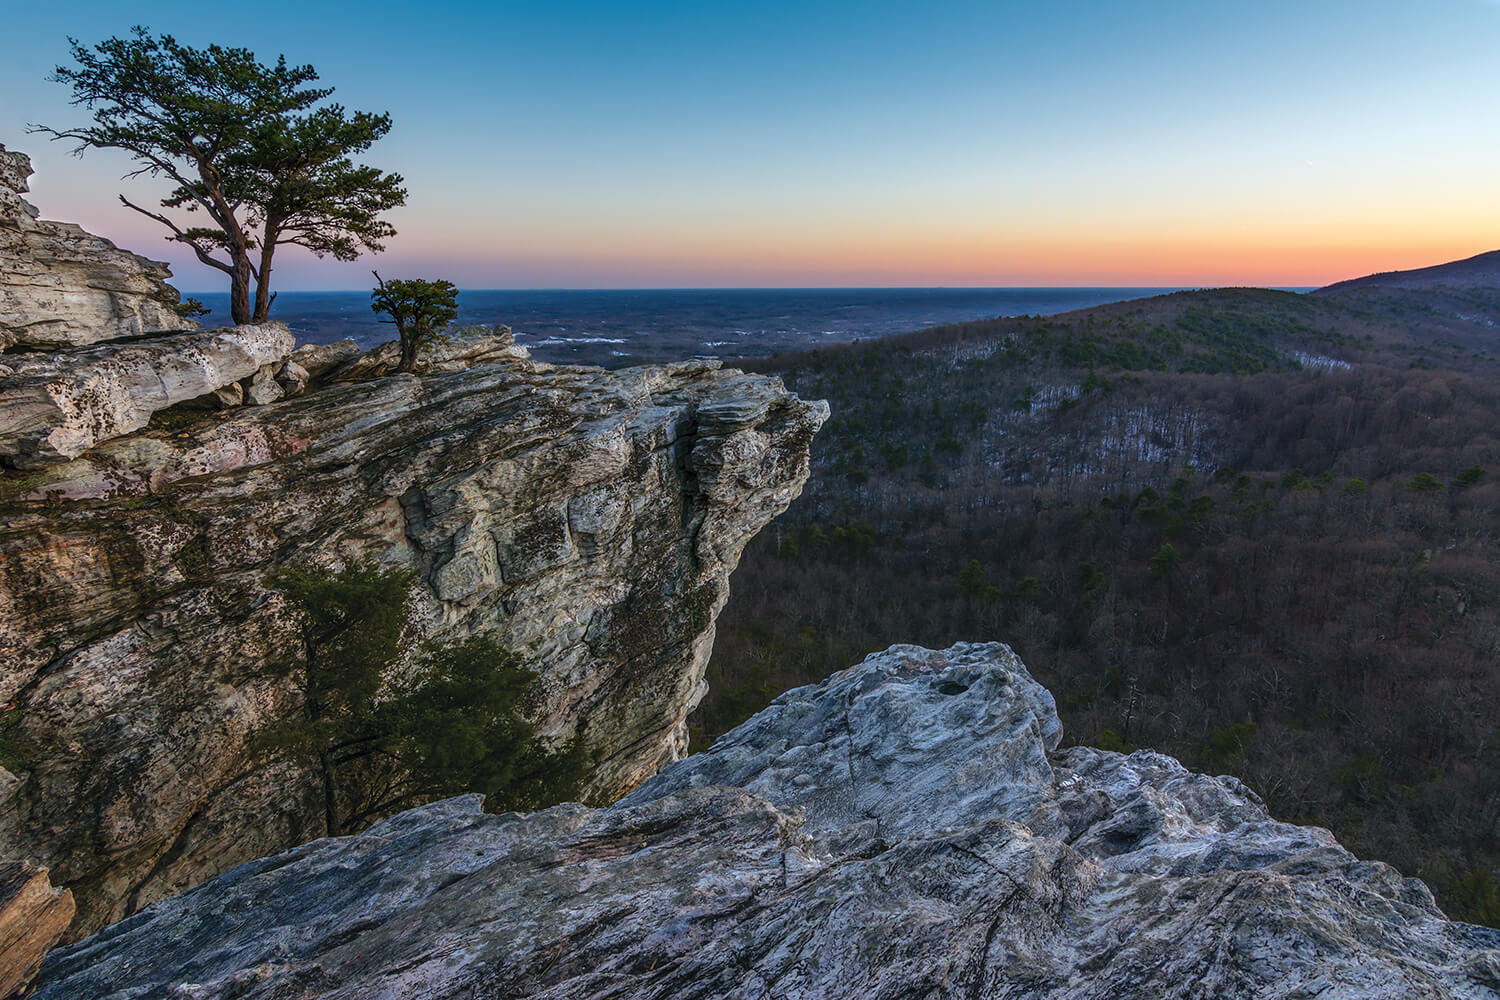 At more than 2,000 feet, Hanging Rock has one foot in the Piedmont, and the other in the Foothills of Stokes County.